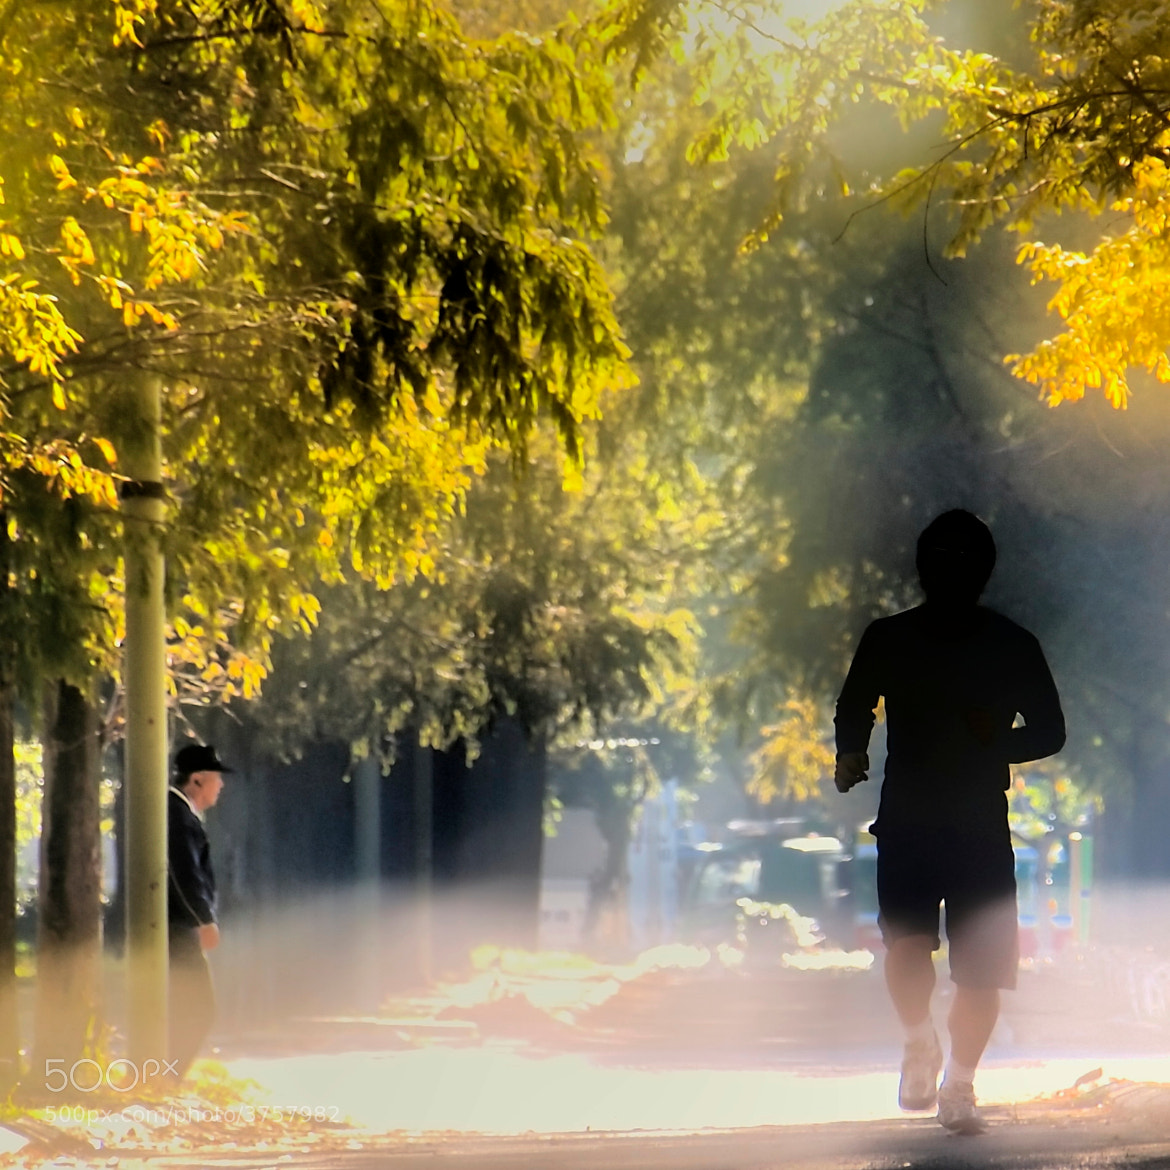 Photograph Jogging by shige 1982art on 500px